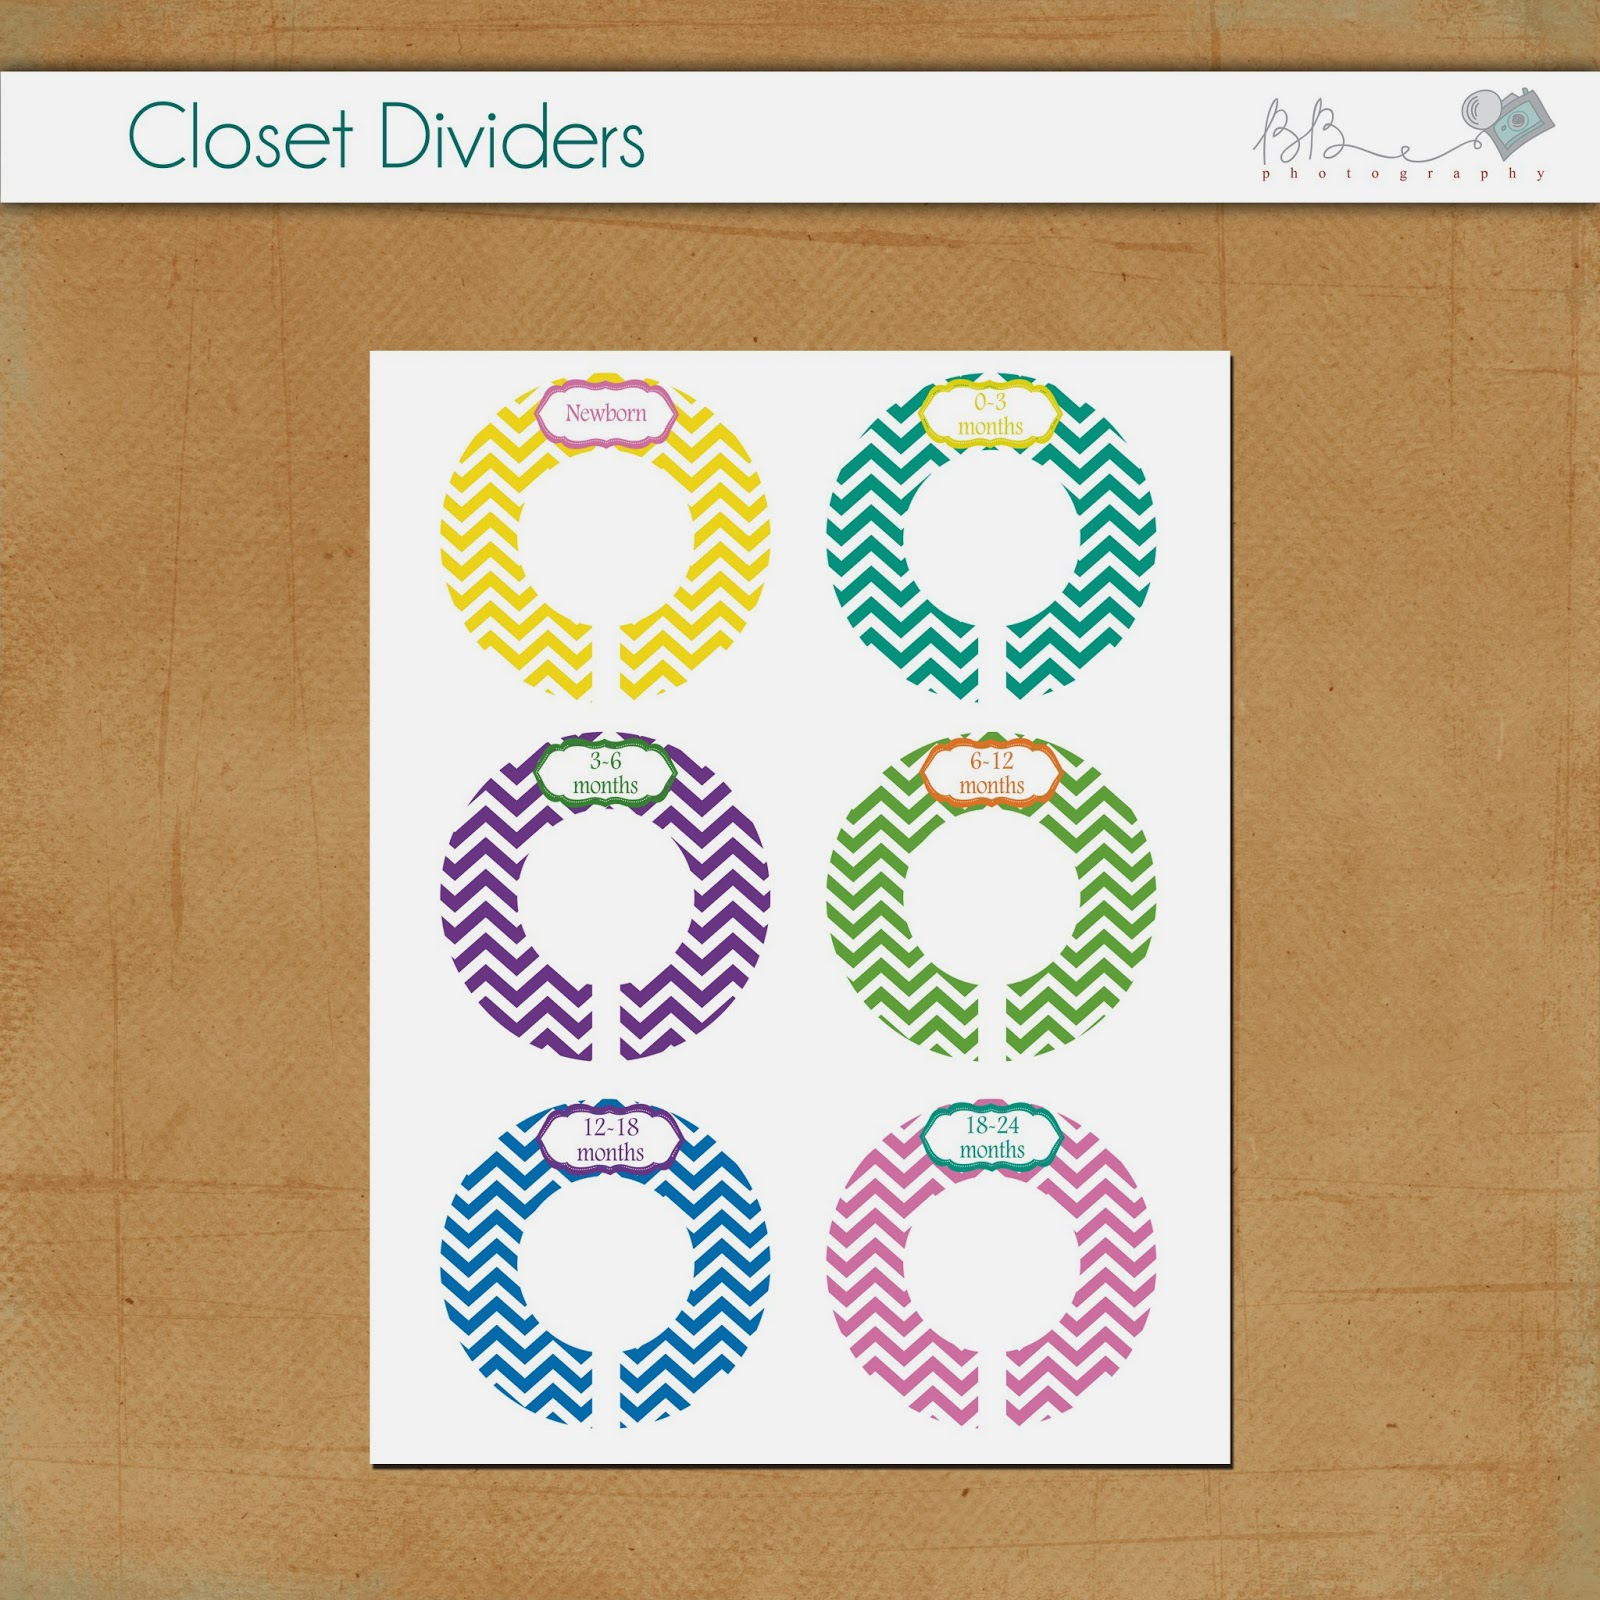 Challenger image with regard to printable closet dividers